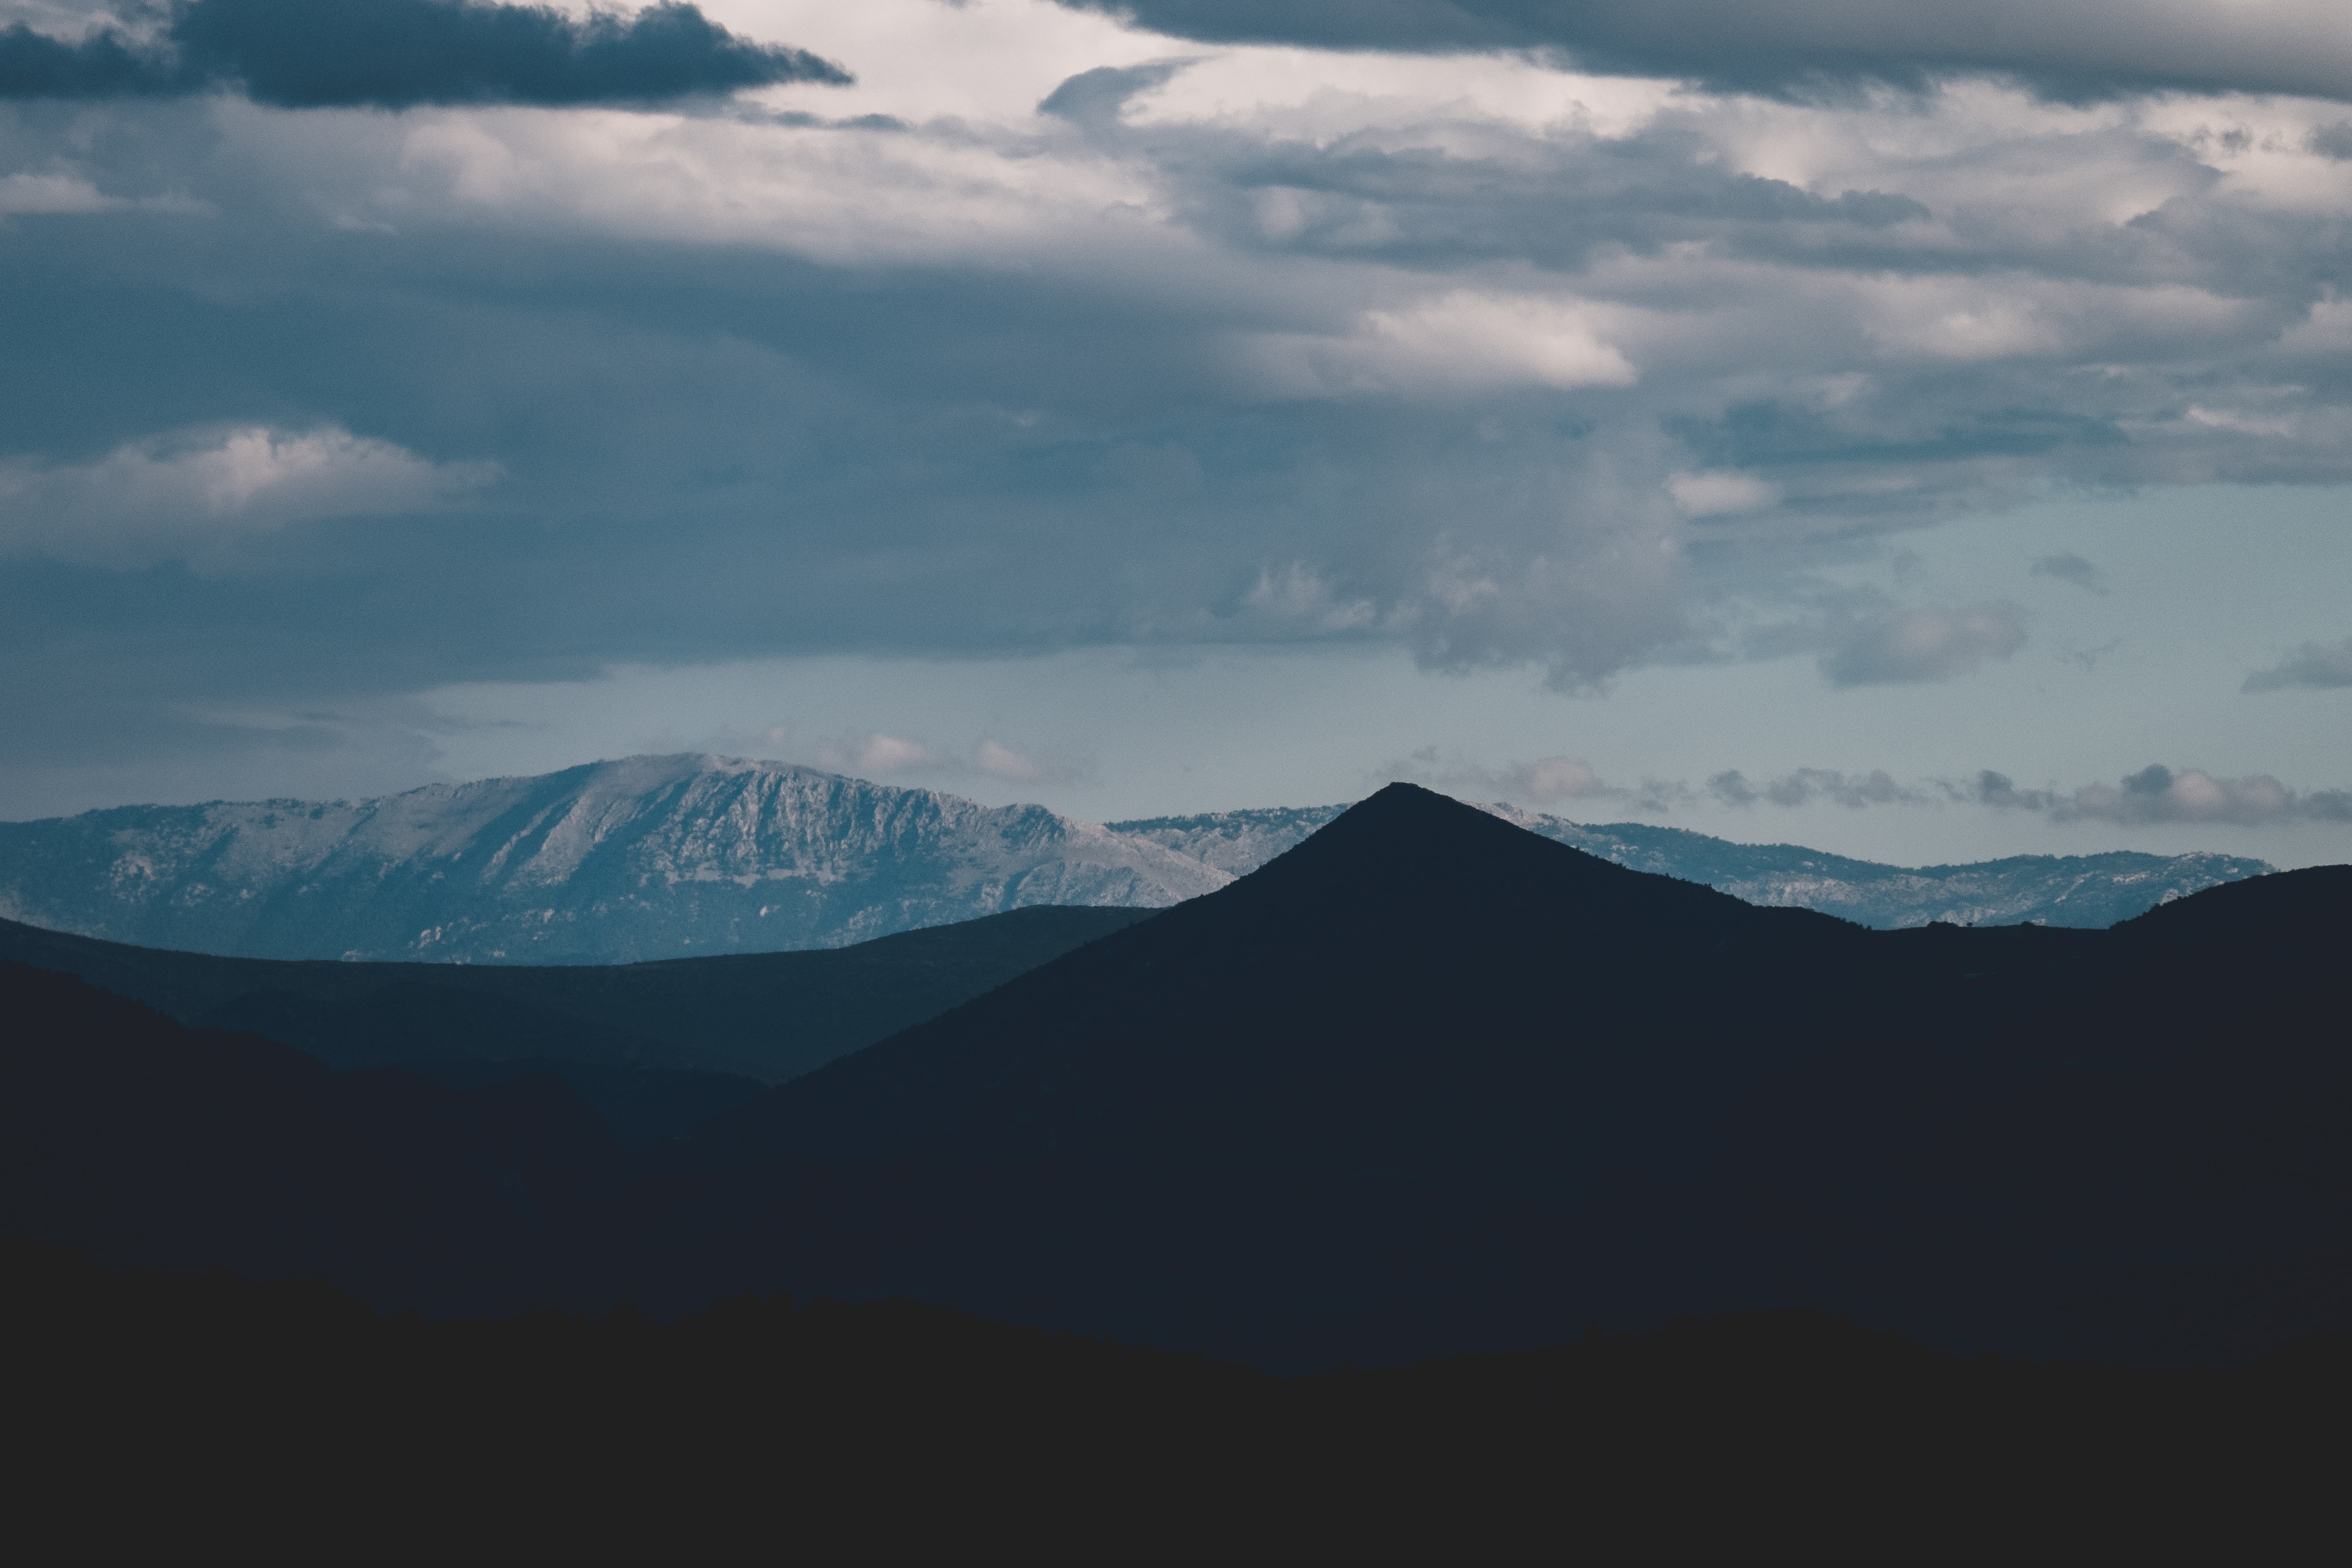 silhouette of mountain under white cloudy sky